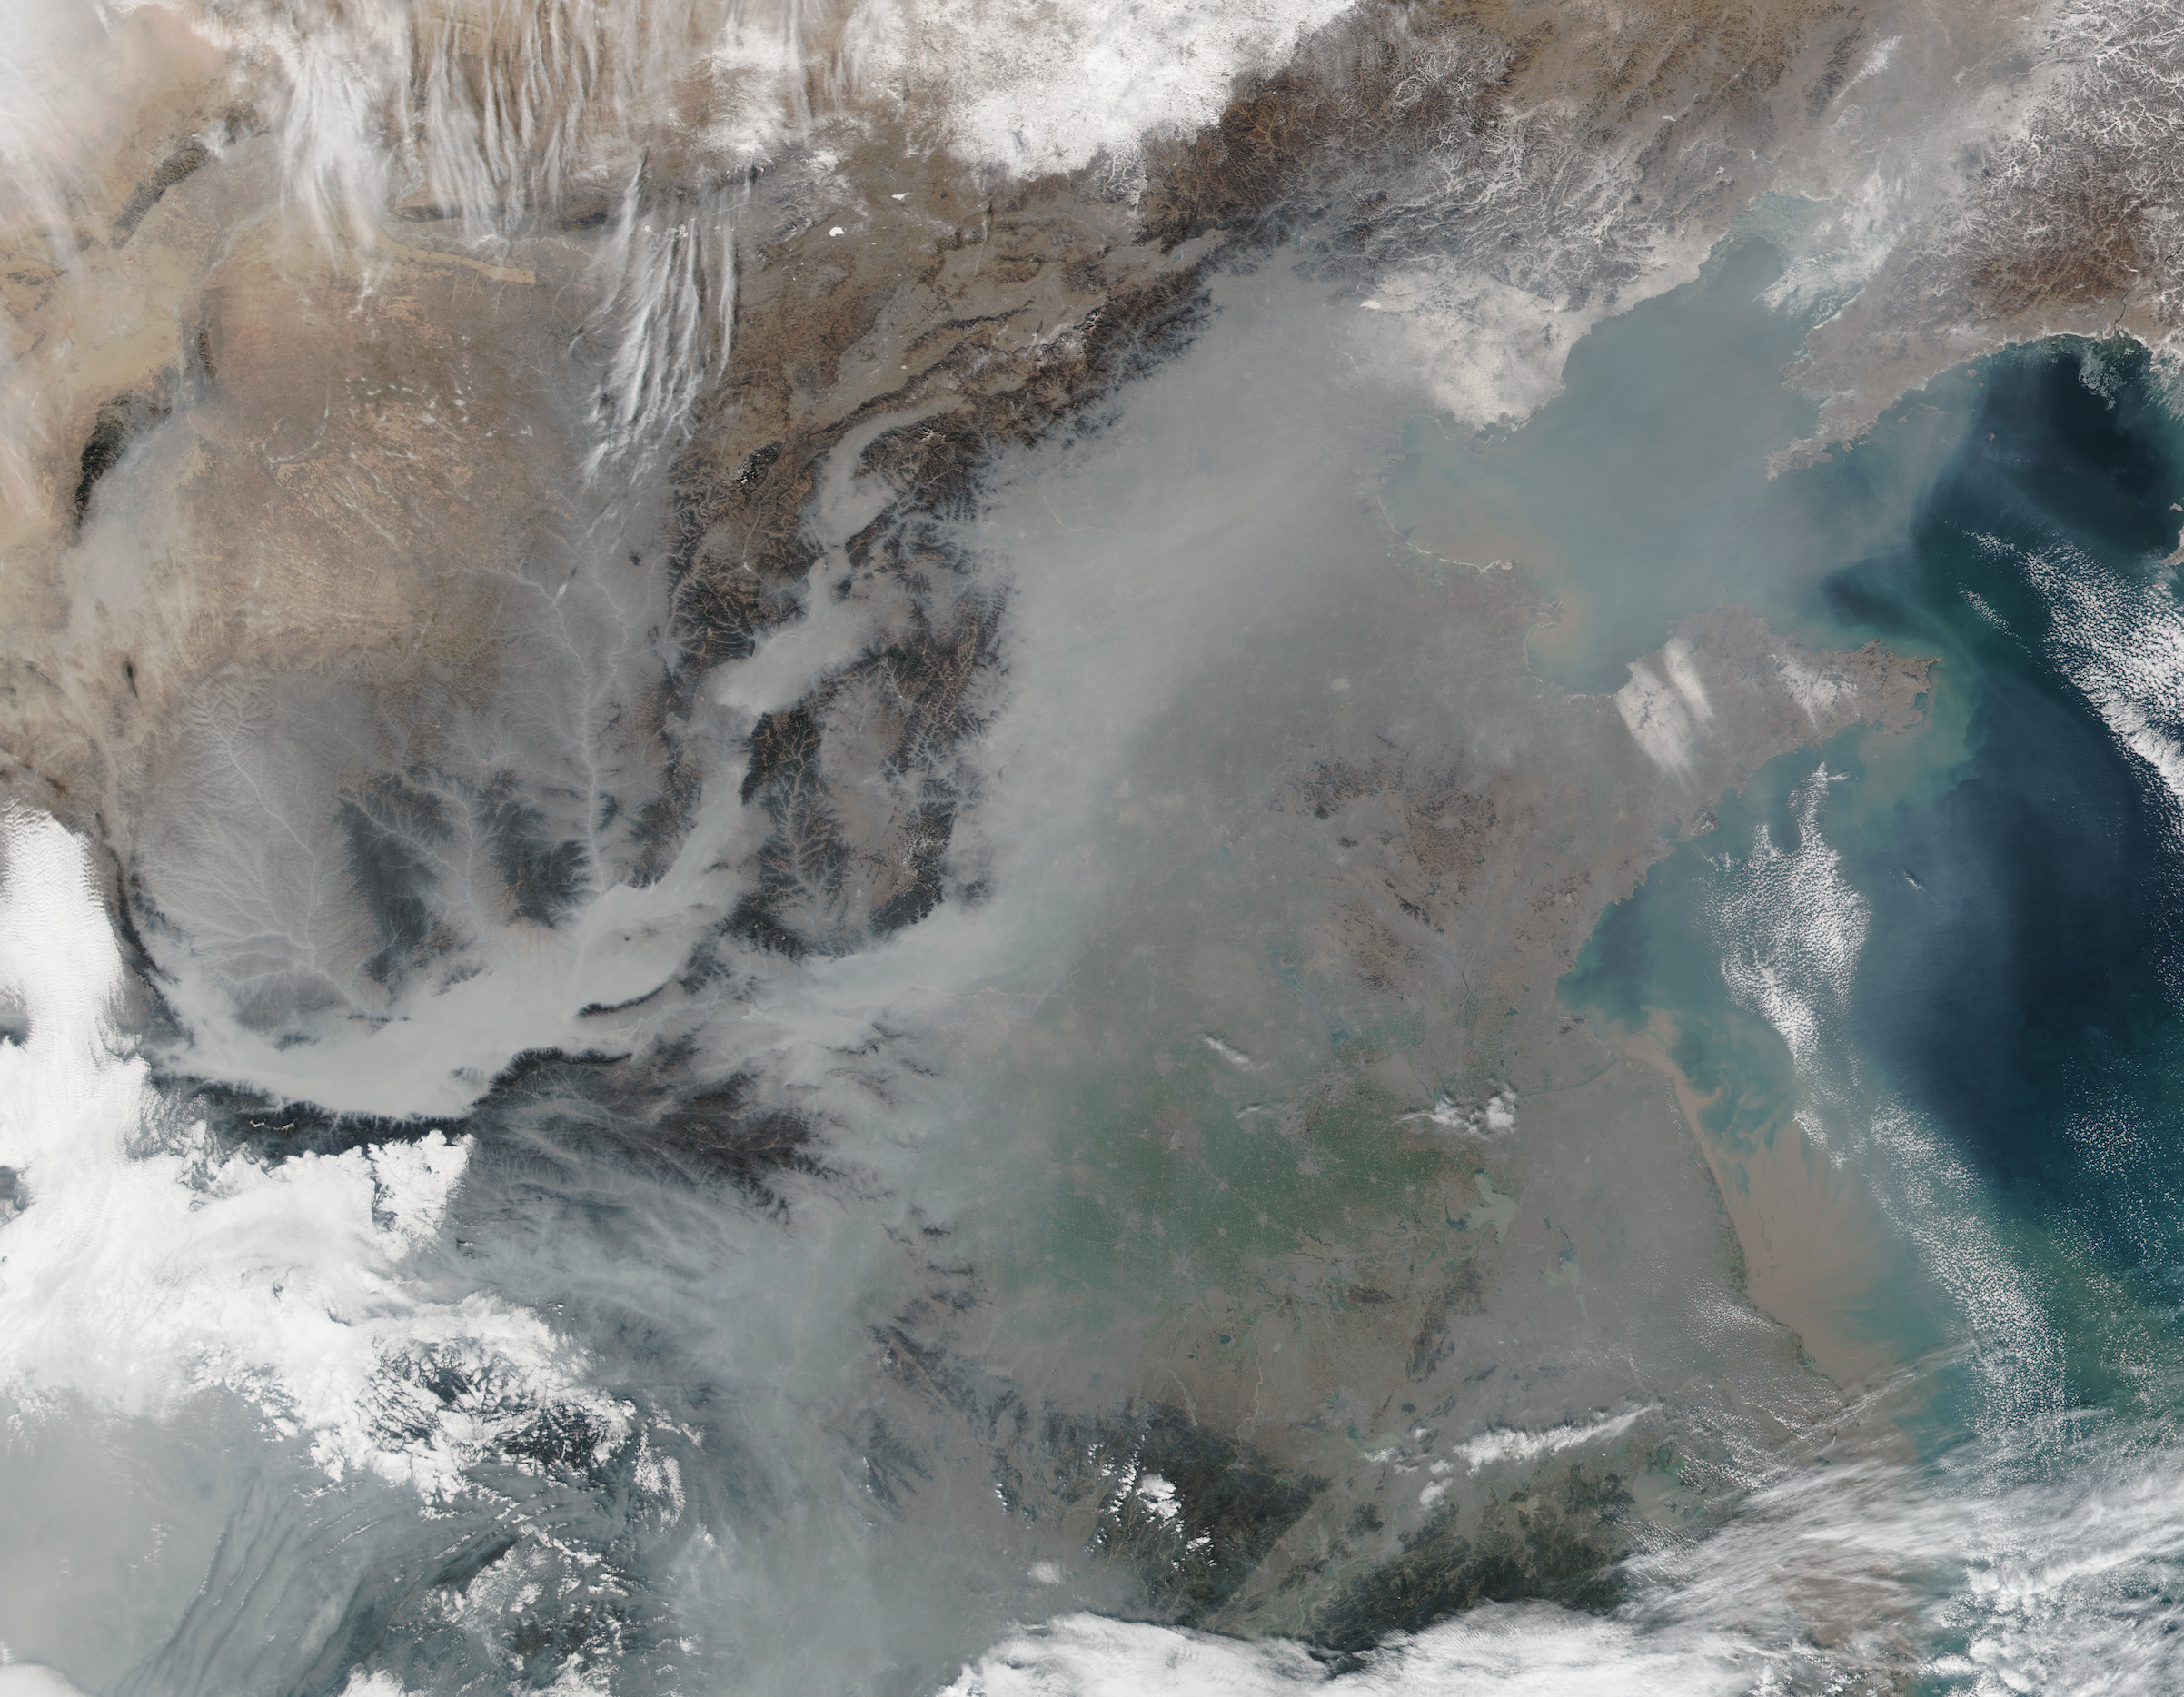 Today's Image of the Day comes from the NASA Earth Observatory and features a look at a thick layer of smog in the skies over eastern China.